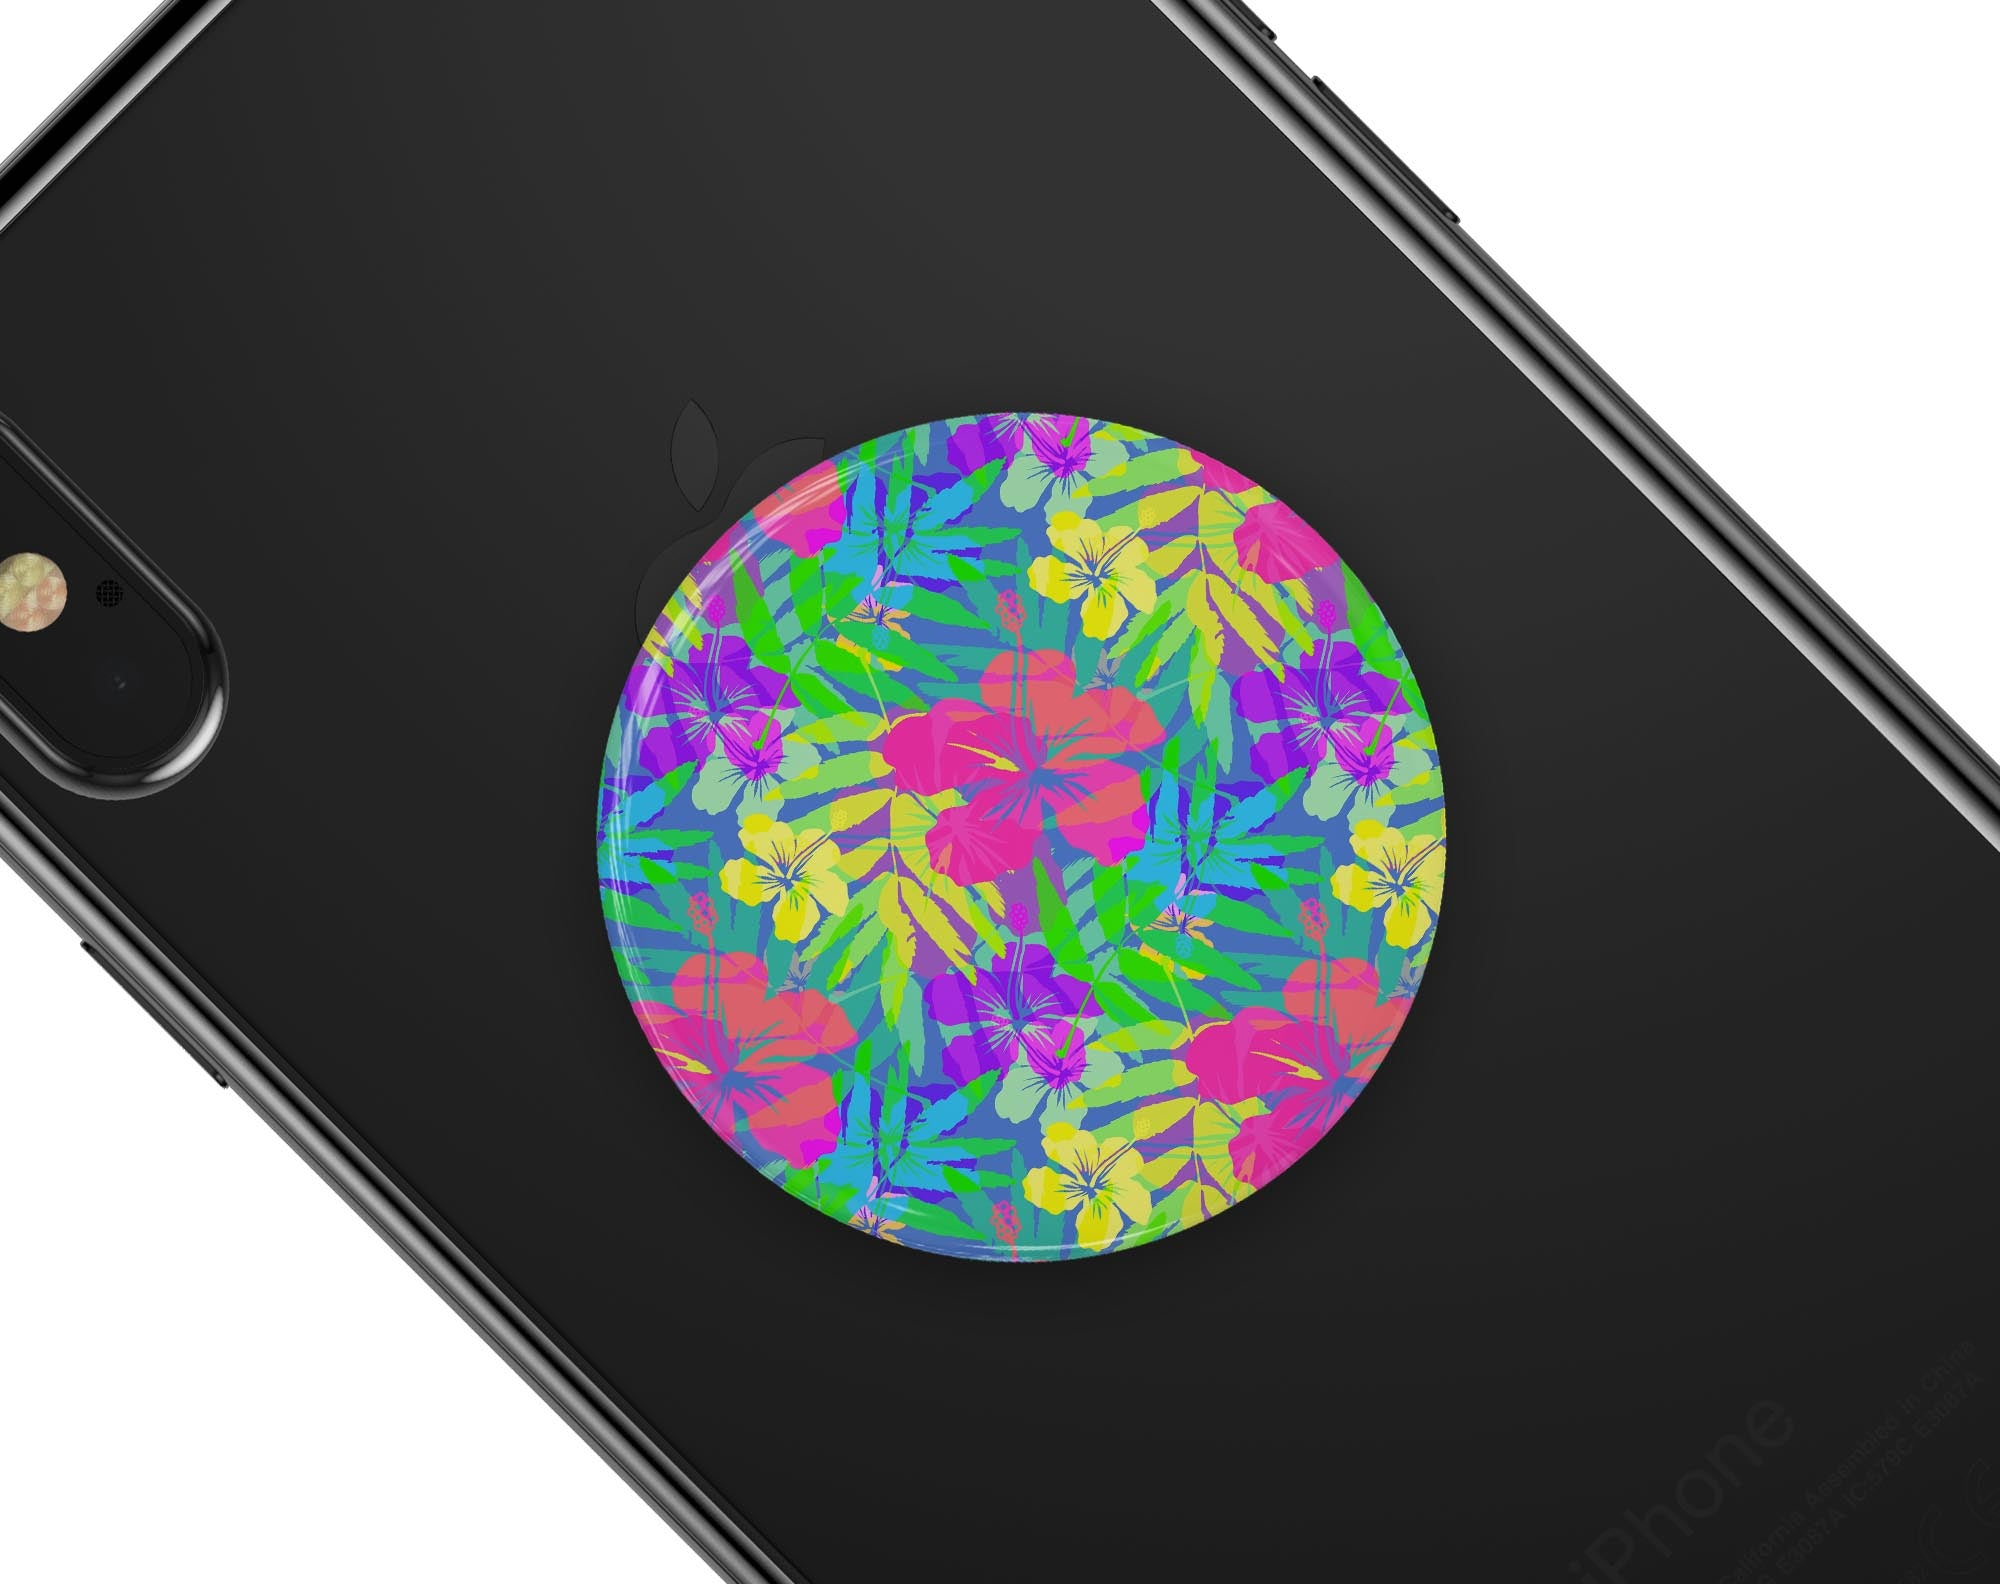 DesignSkinz Premium Decal Sticker Skin-Kit for PopSockets Smartphone Extendable Grip /& Stand Carbon Fiber Texture